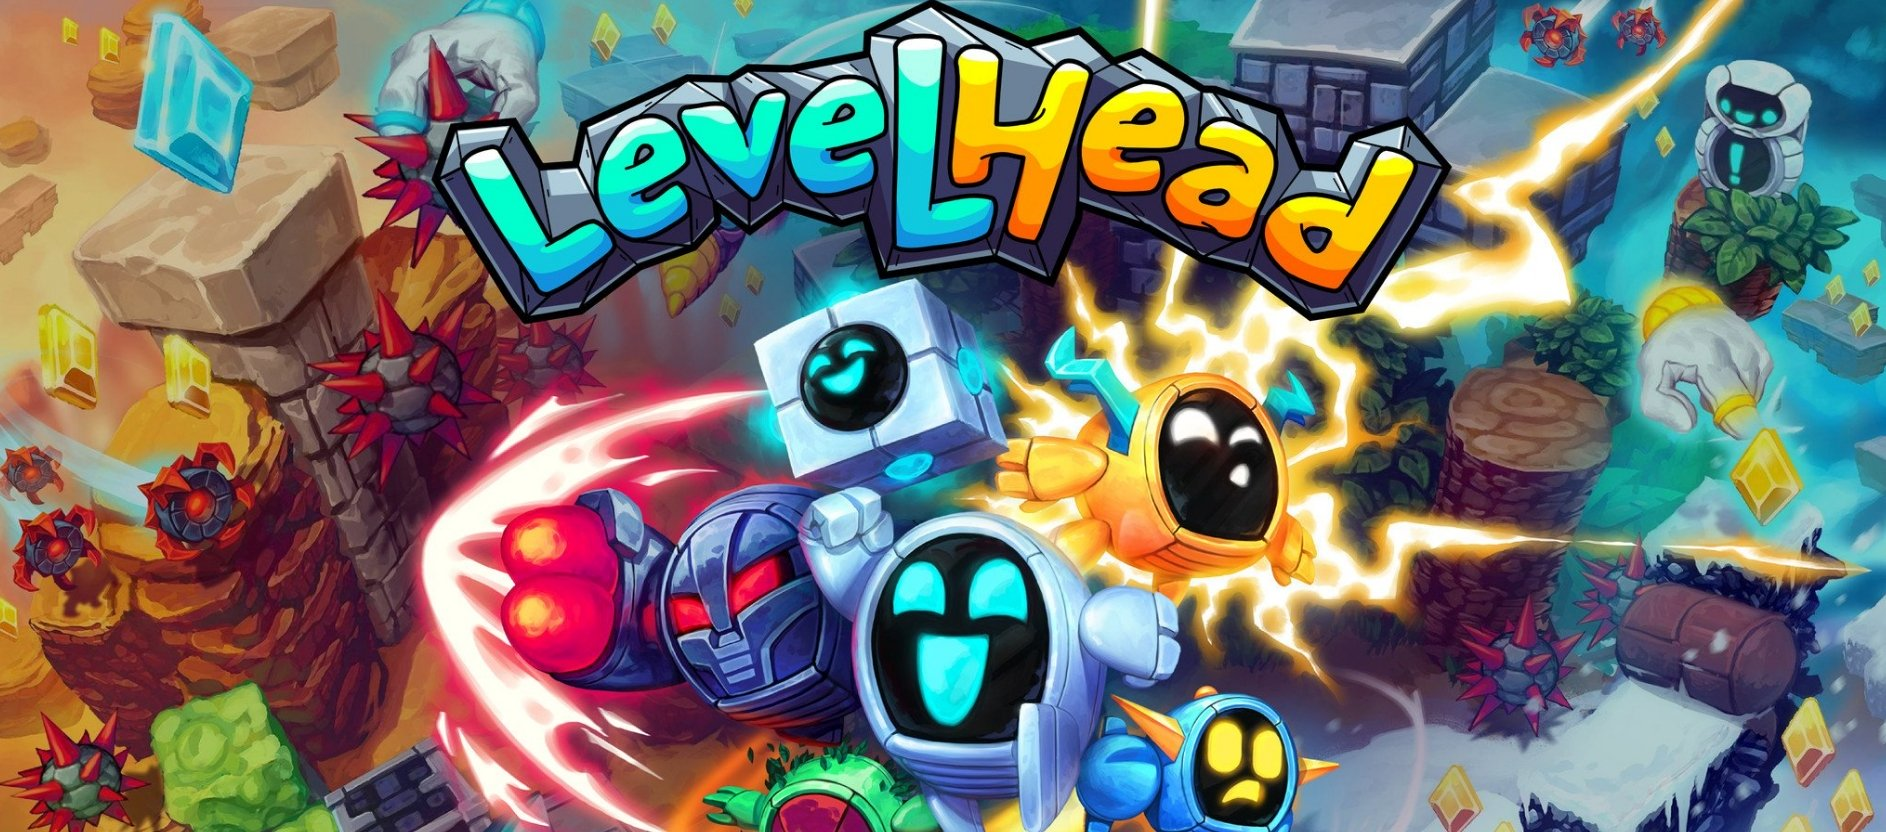 Butterscotch Shenanigans Announces Console And Mobile Release Date For Levelhead